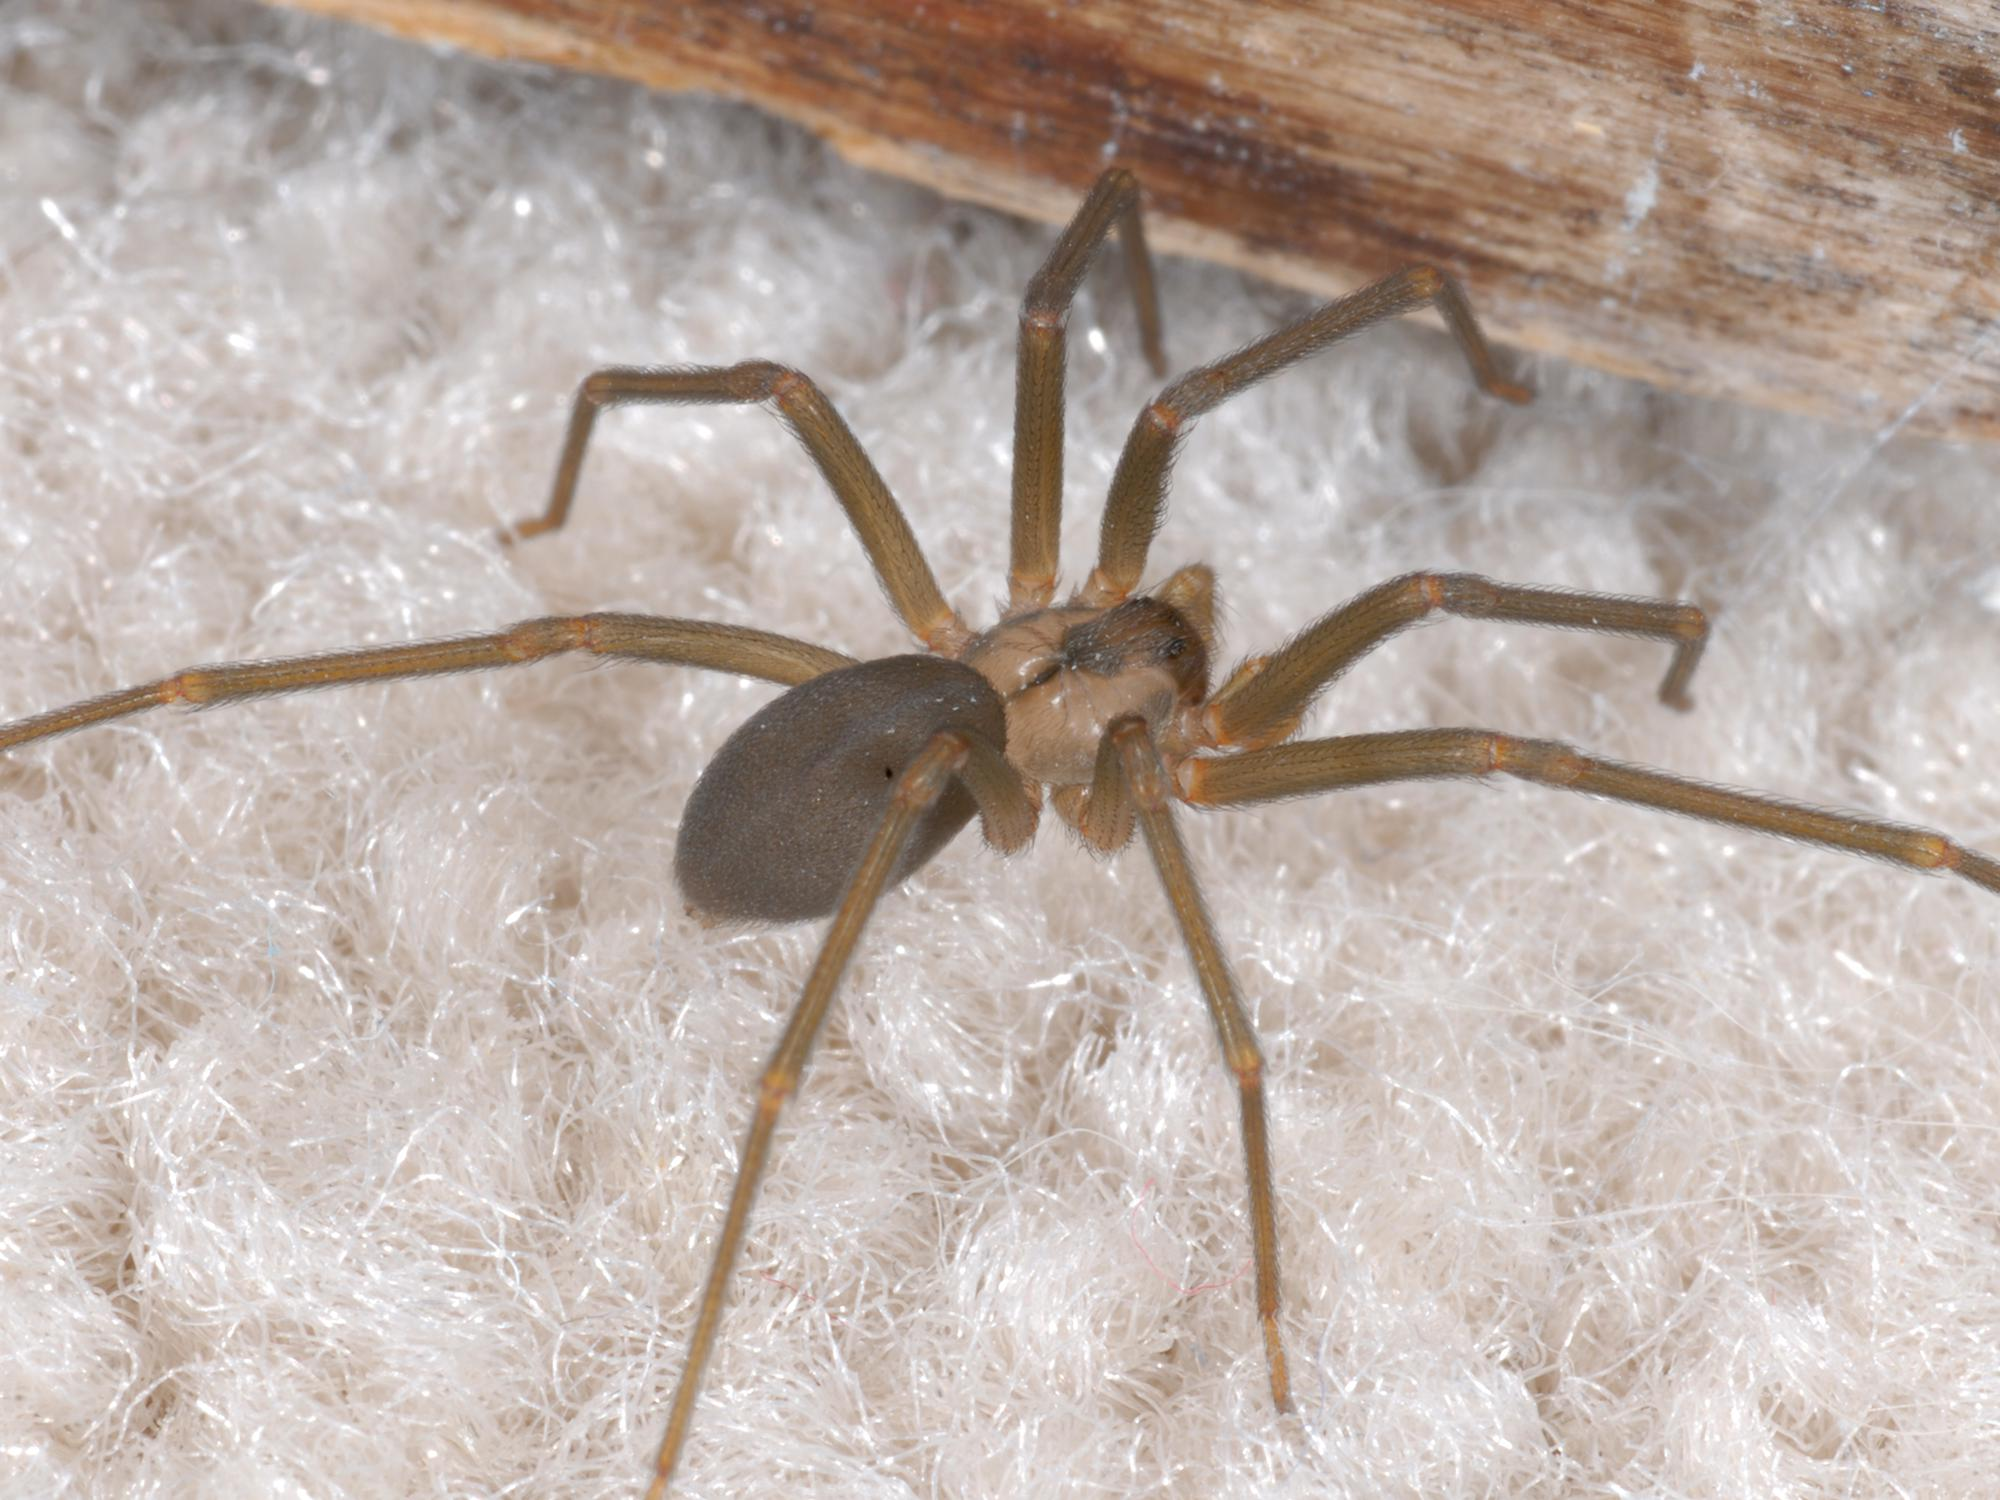 The dark, fiddle-shaped pattern on the back of the brown recluse helps distinguish it from other spiders. Because of their reclusive nature, watch out for these venomous spiders in dark, neglected areas. (Photo by MSU Extension Service/Blake Layton)